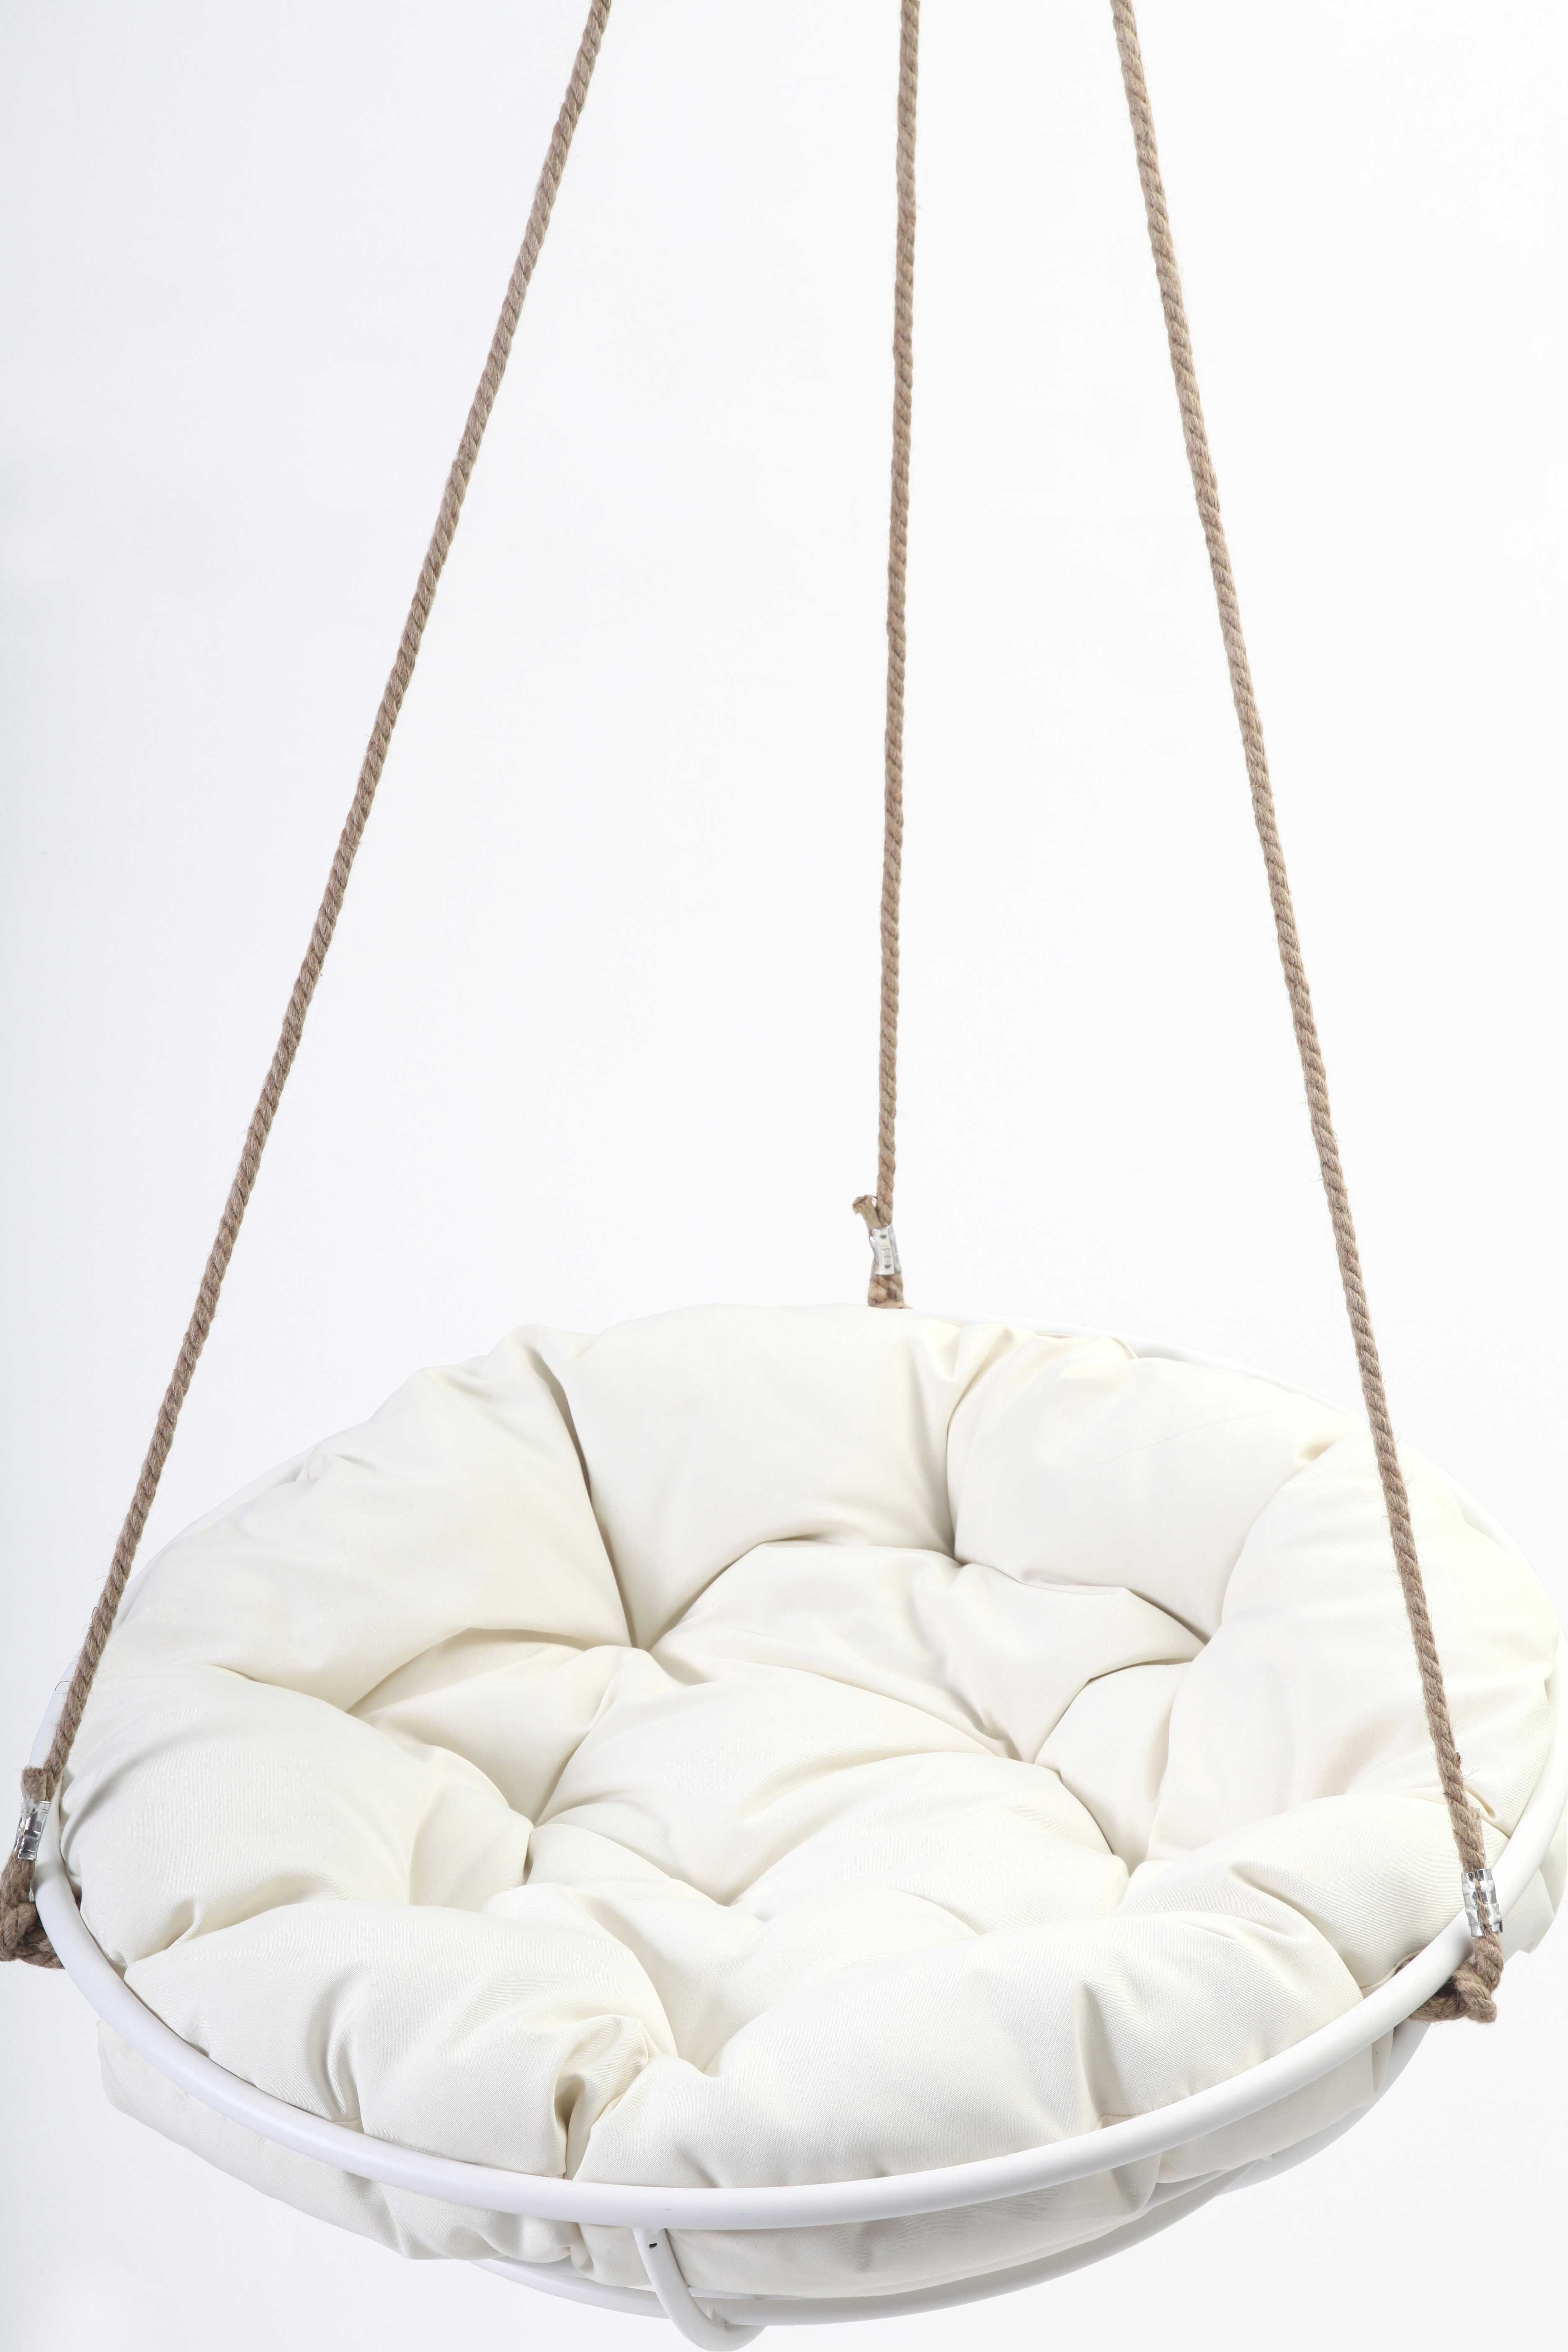 Genial Cool Hanging Papasan Chair For Your Beloved Family: Cozy White Framed Hanging  Papasan